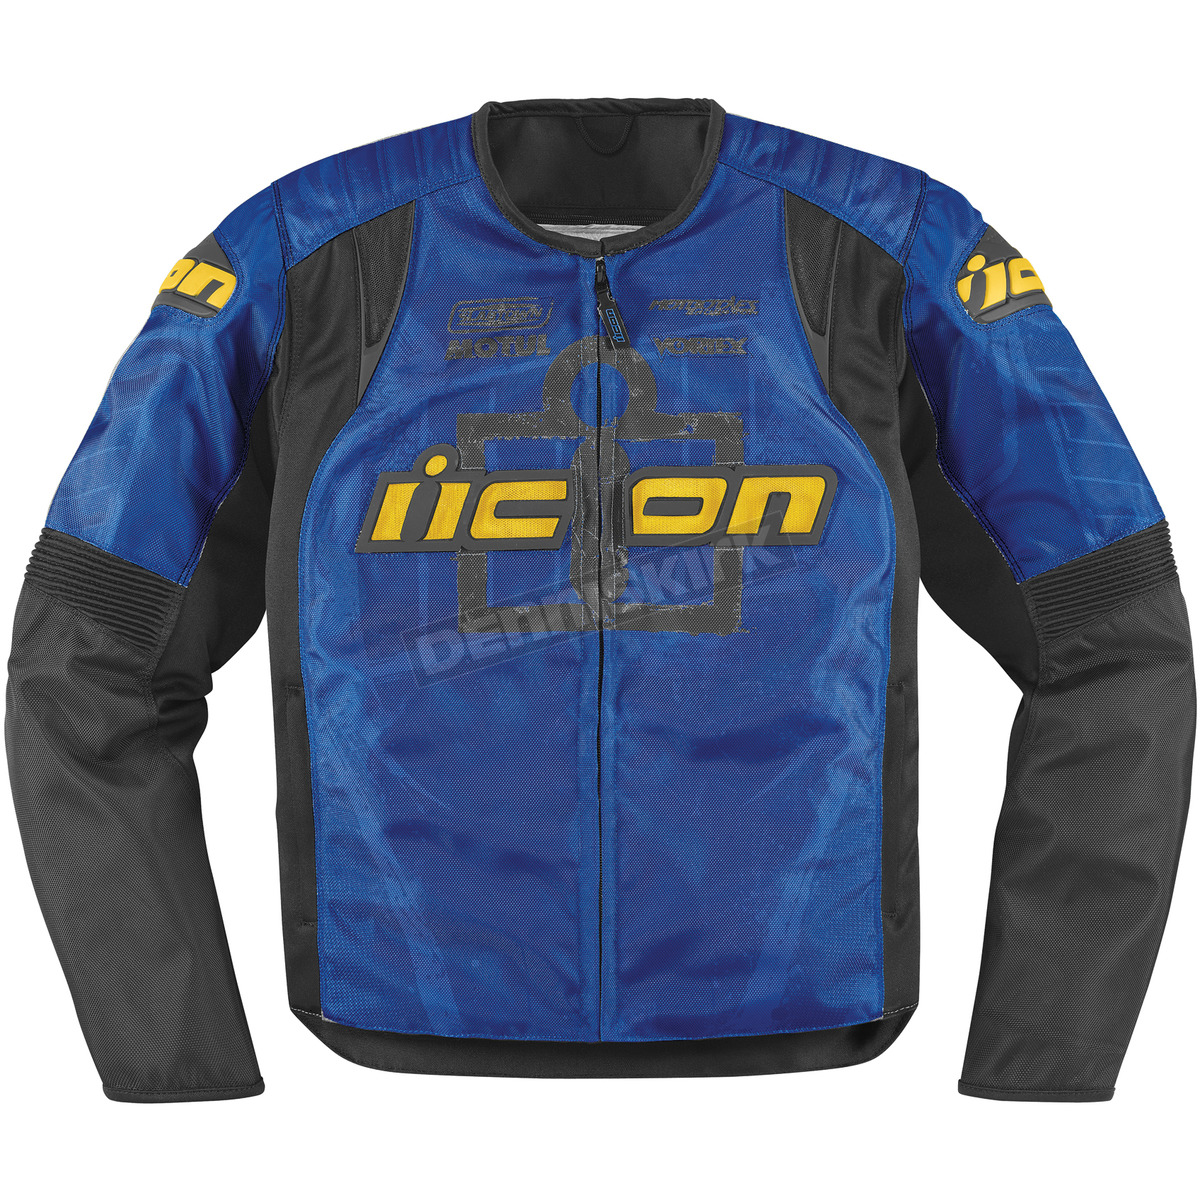 Jackets from Icon are an edgy motorcyclist's dream. With a wide-ranging set of colors, styles, fits, and functionalities, Icon Jackets are among the most popular in the business. Known for their unparalleled attitude and unruly ethos, Icon Jackets are almost as gnarly .